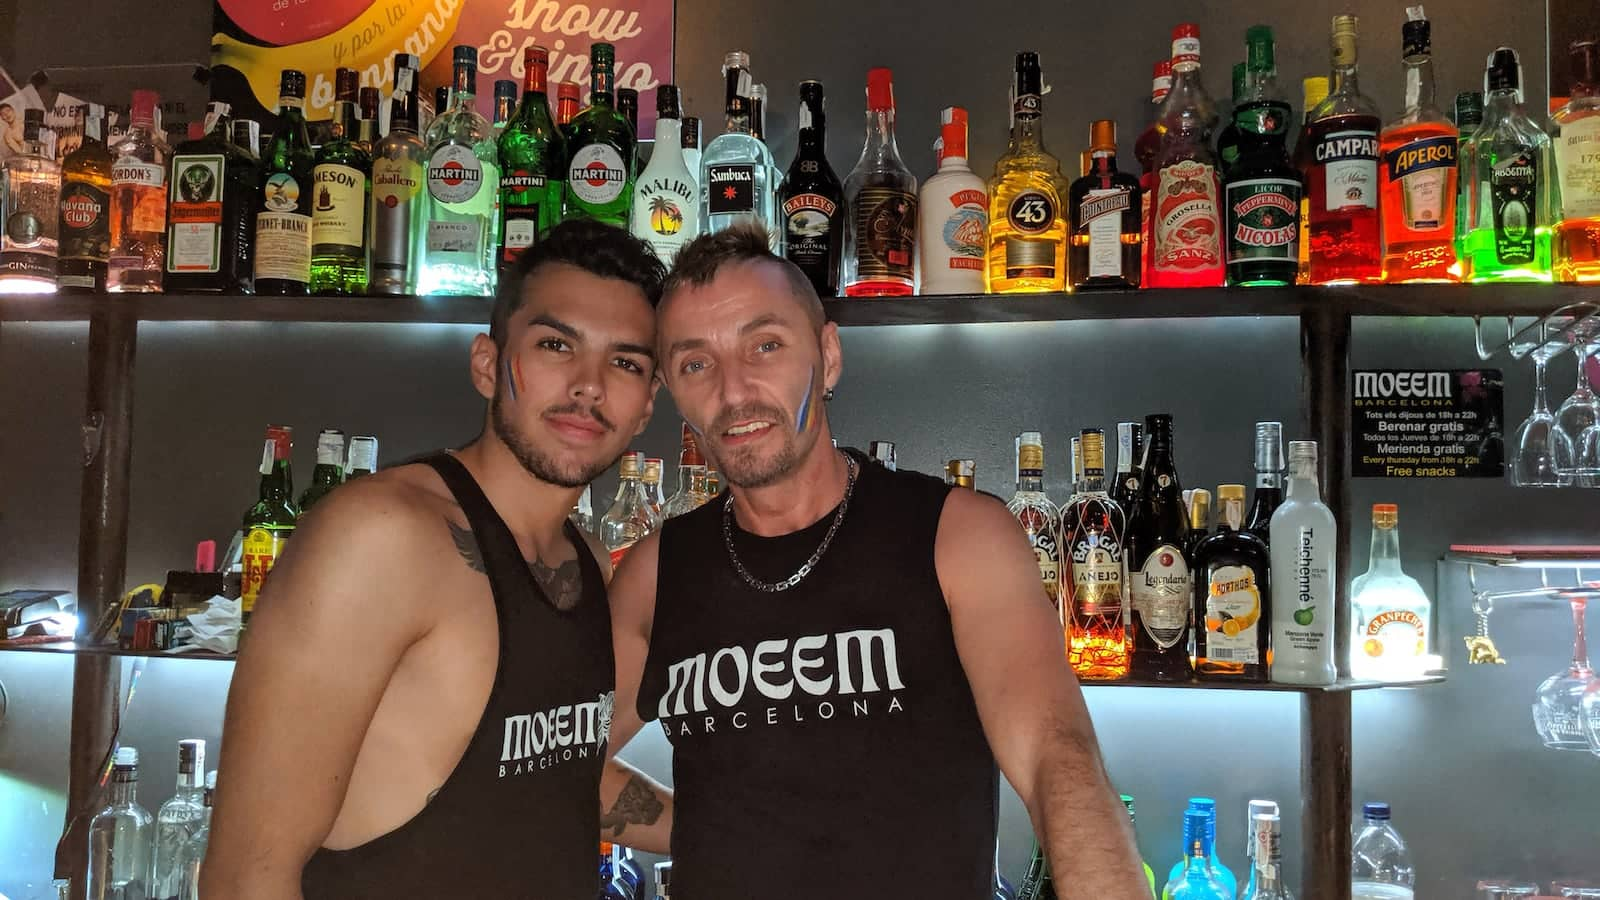 Moeem gay bar Barcelona sexy barmen